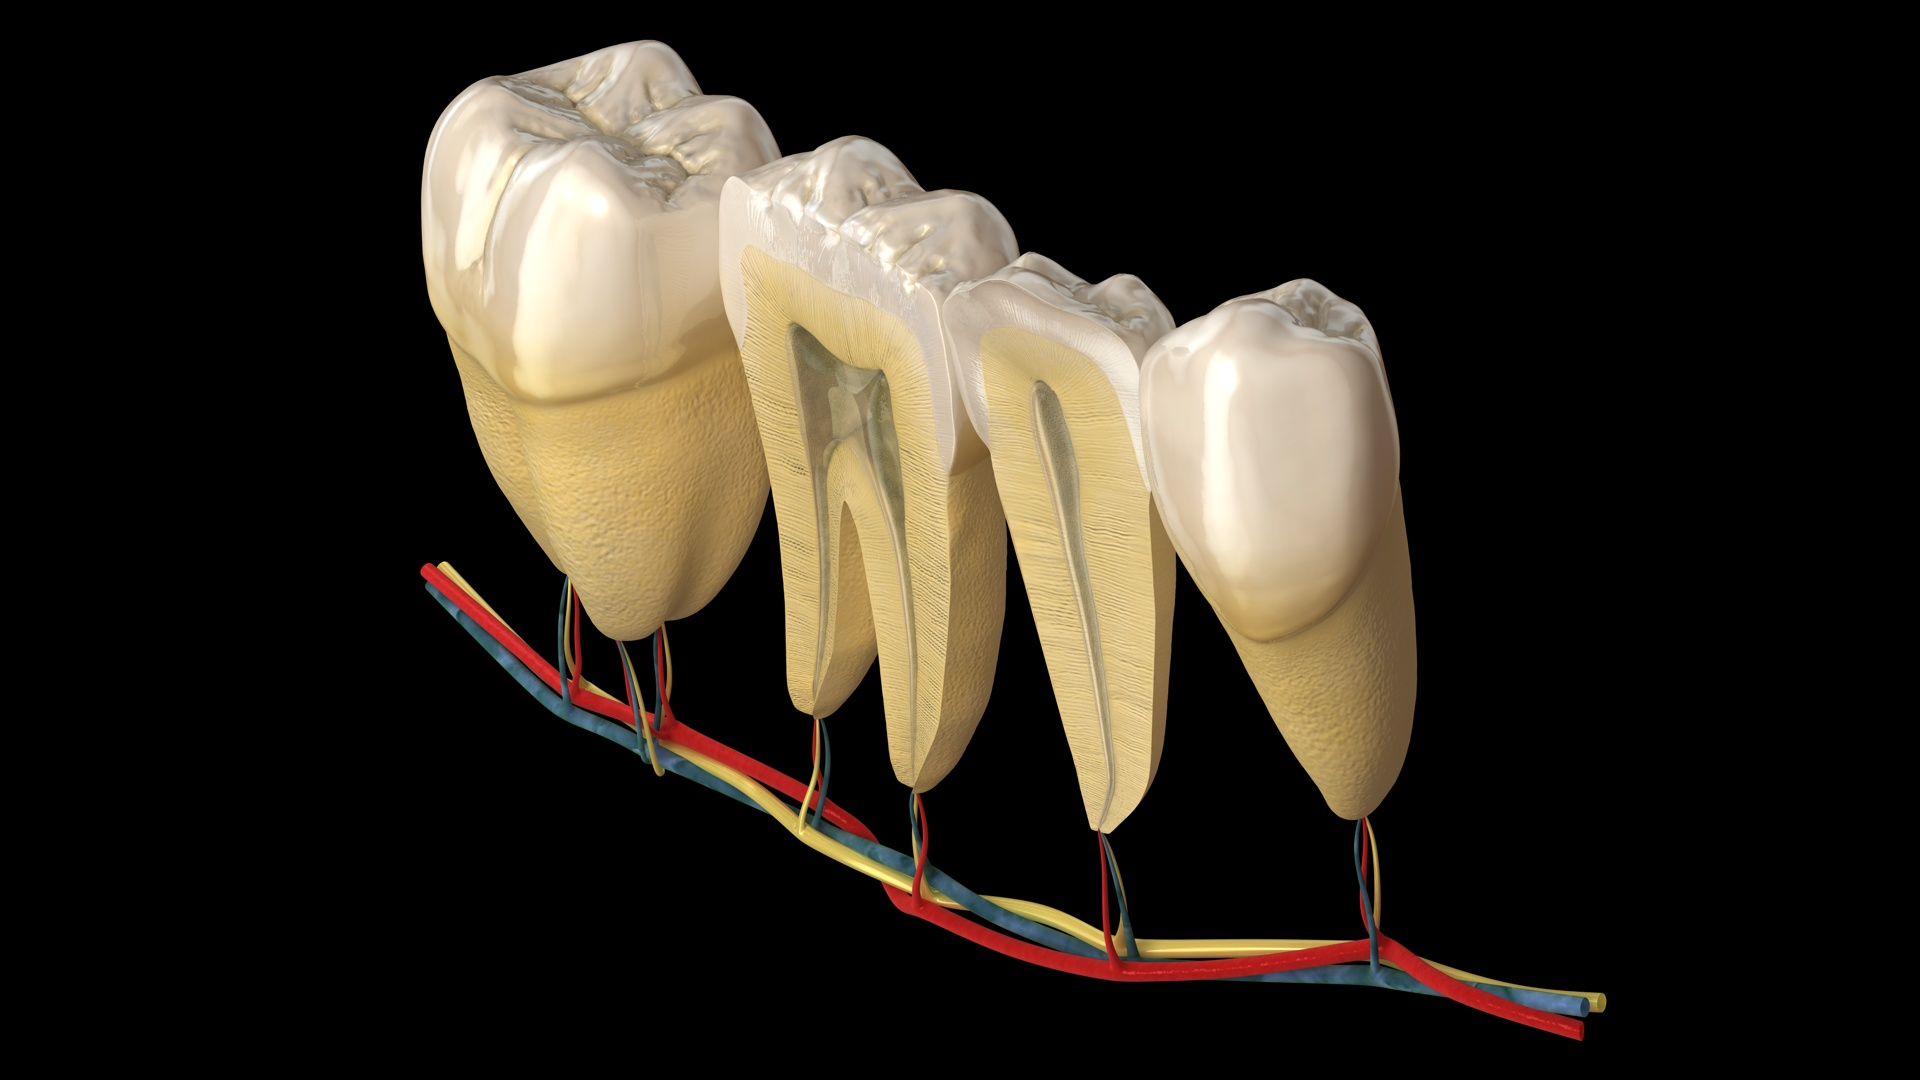 Download Dental Pics Wallpapers Gallery